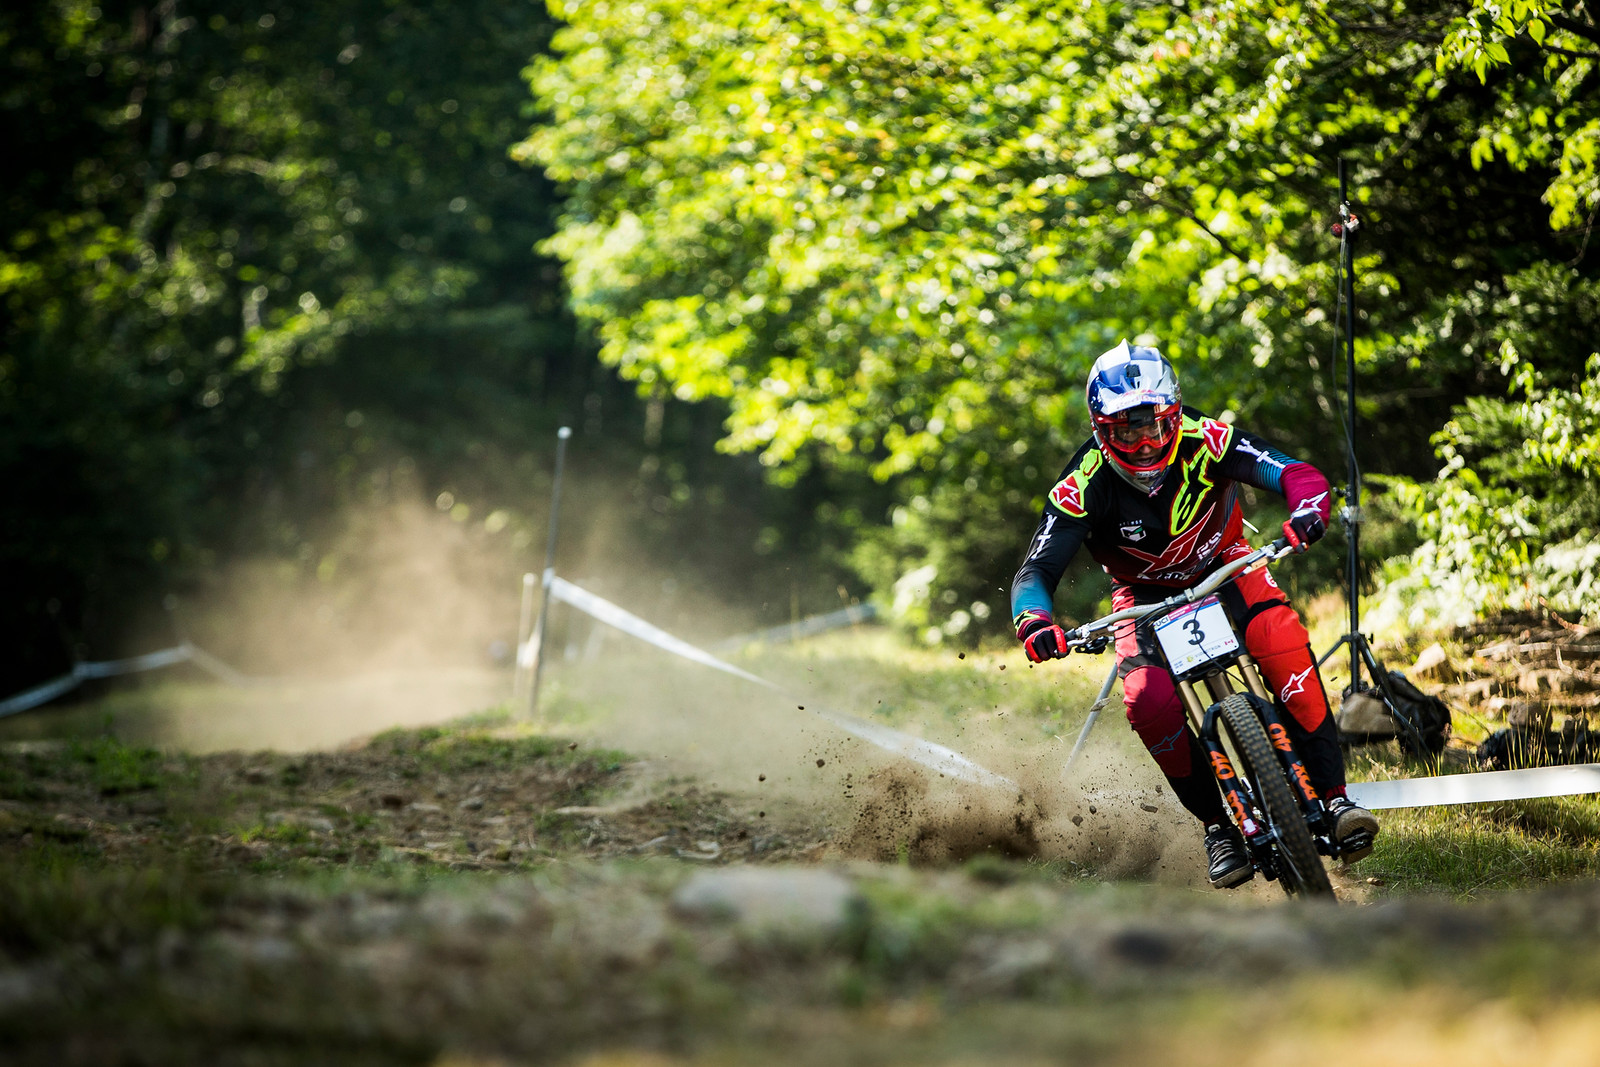 Late braking and plowing through rough ground at warp speed: Gwin knows a thing or two about such situations. 1st place qualifier.